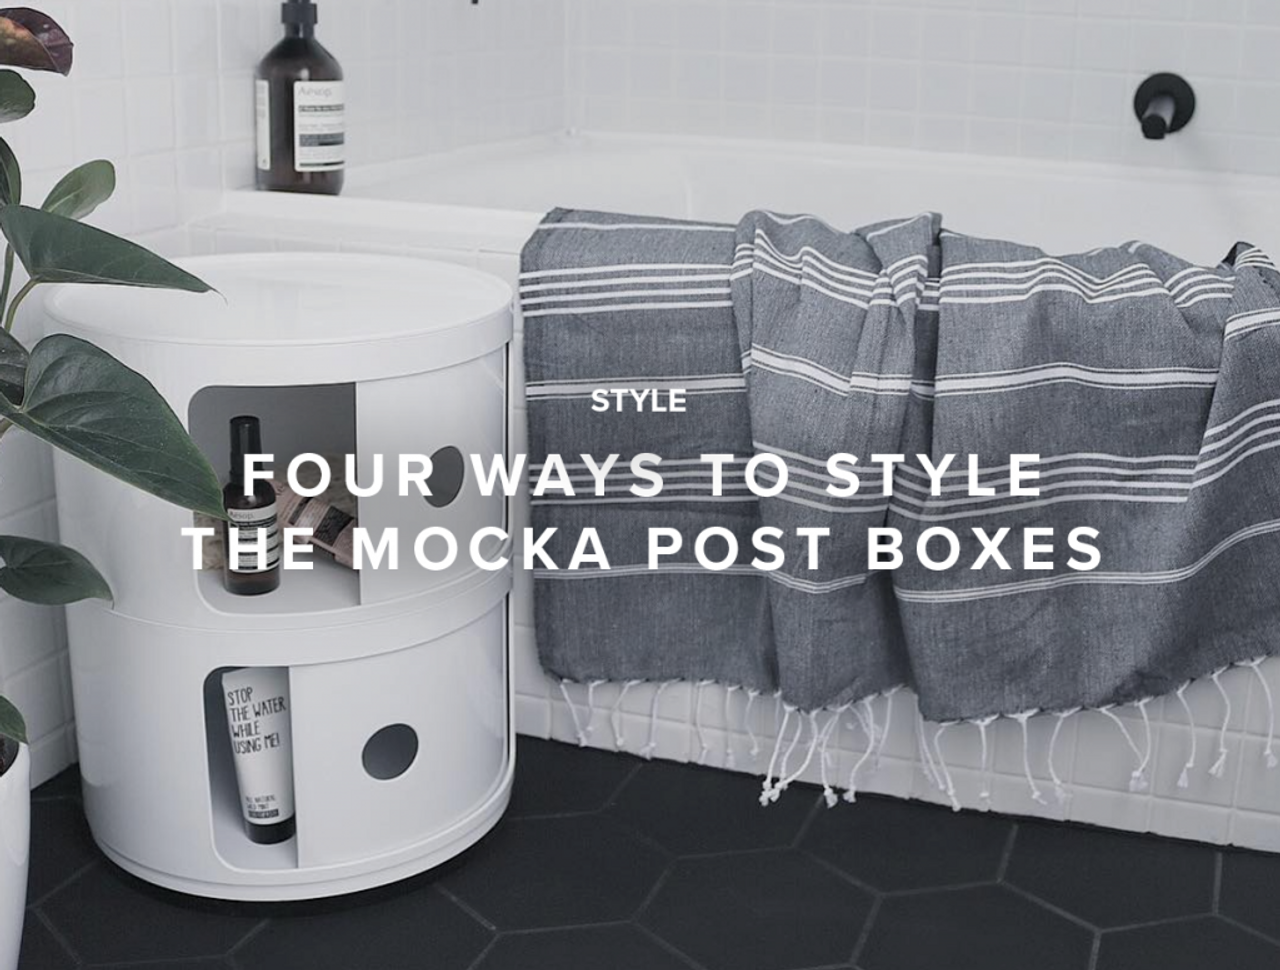 Four Ways to Style the Mocka Postboxes